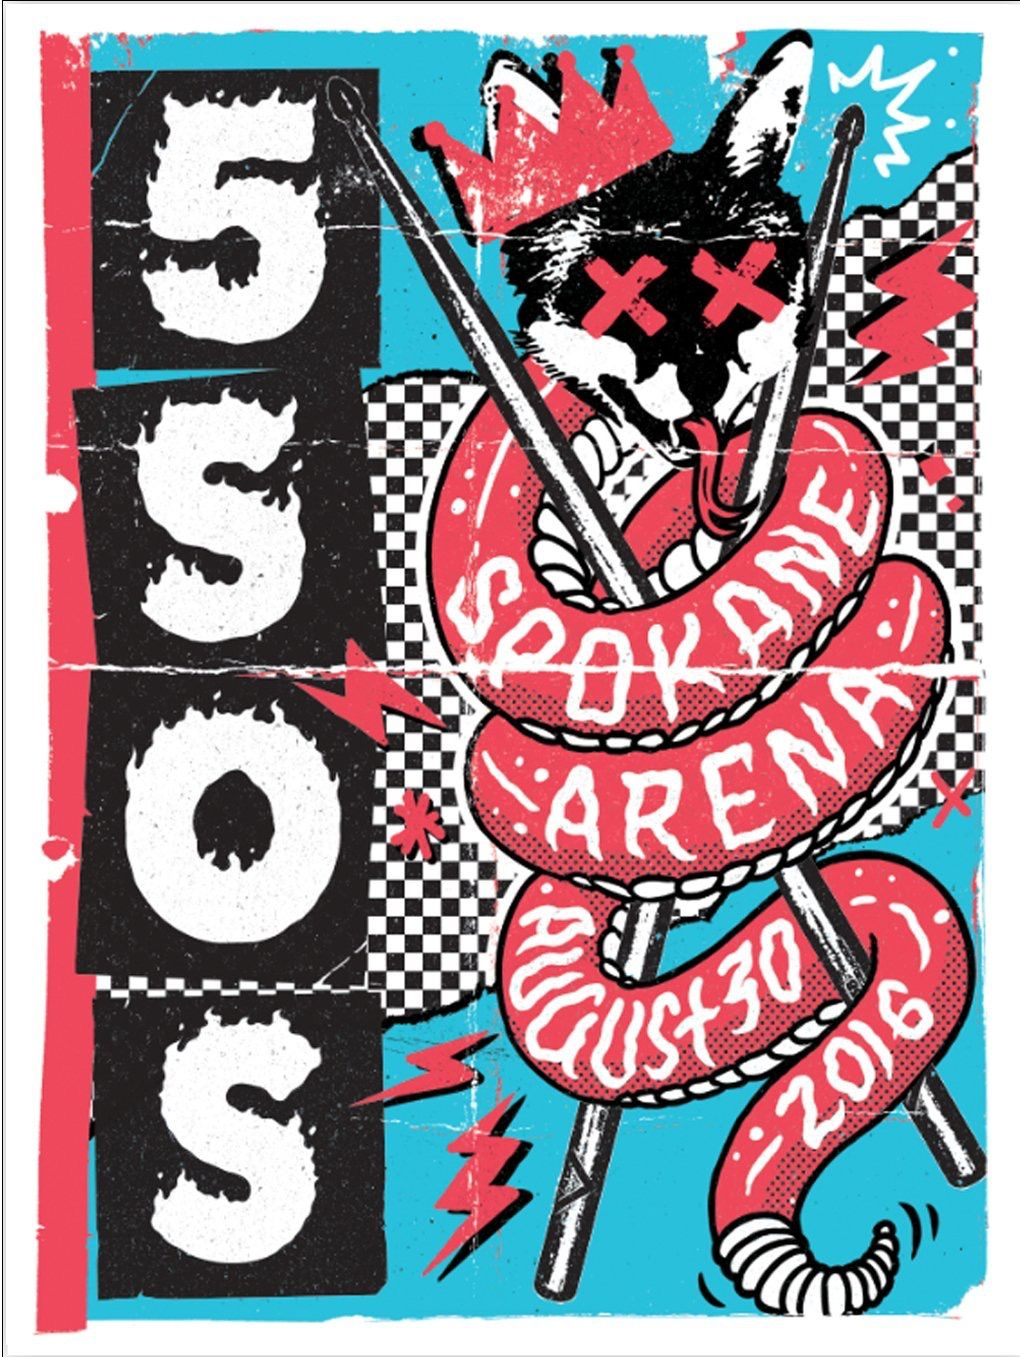 5sos poster design - Poster